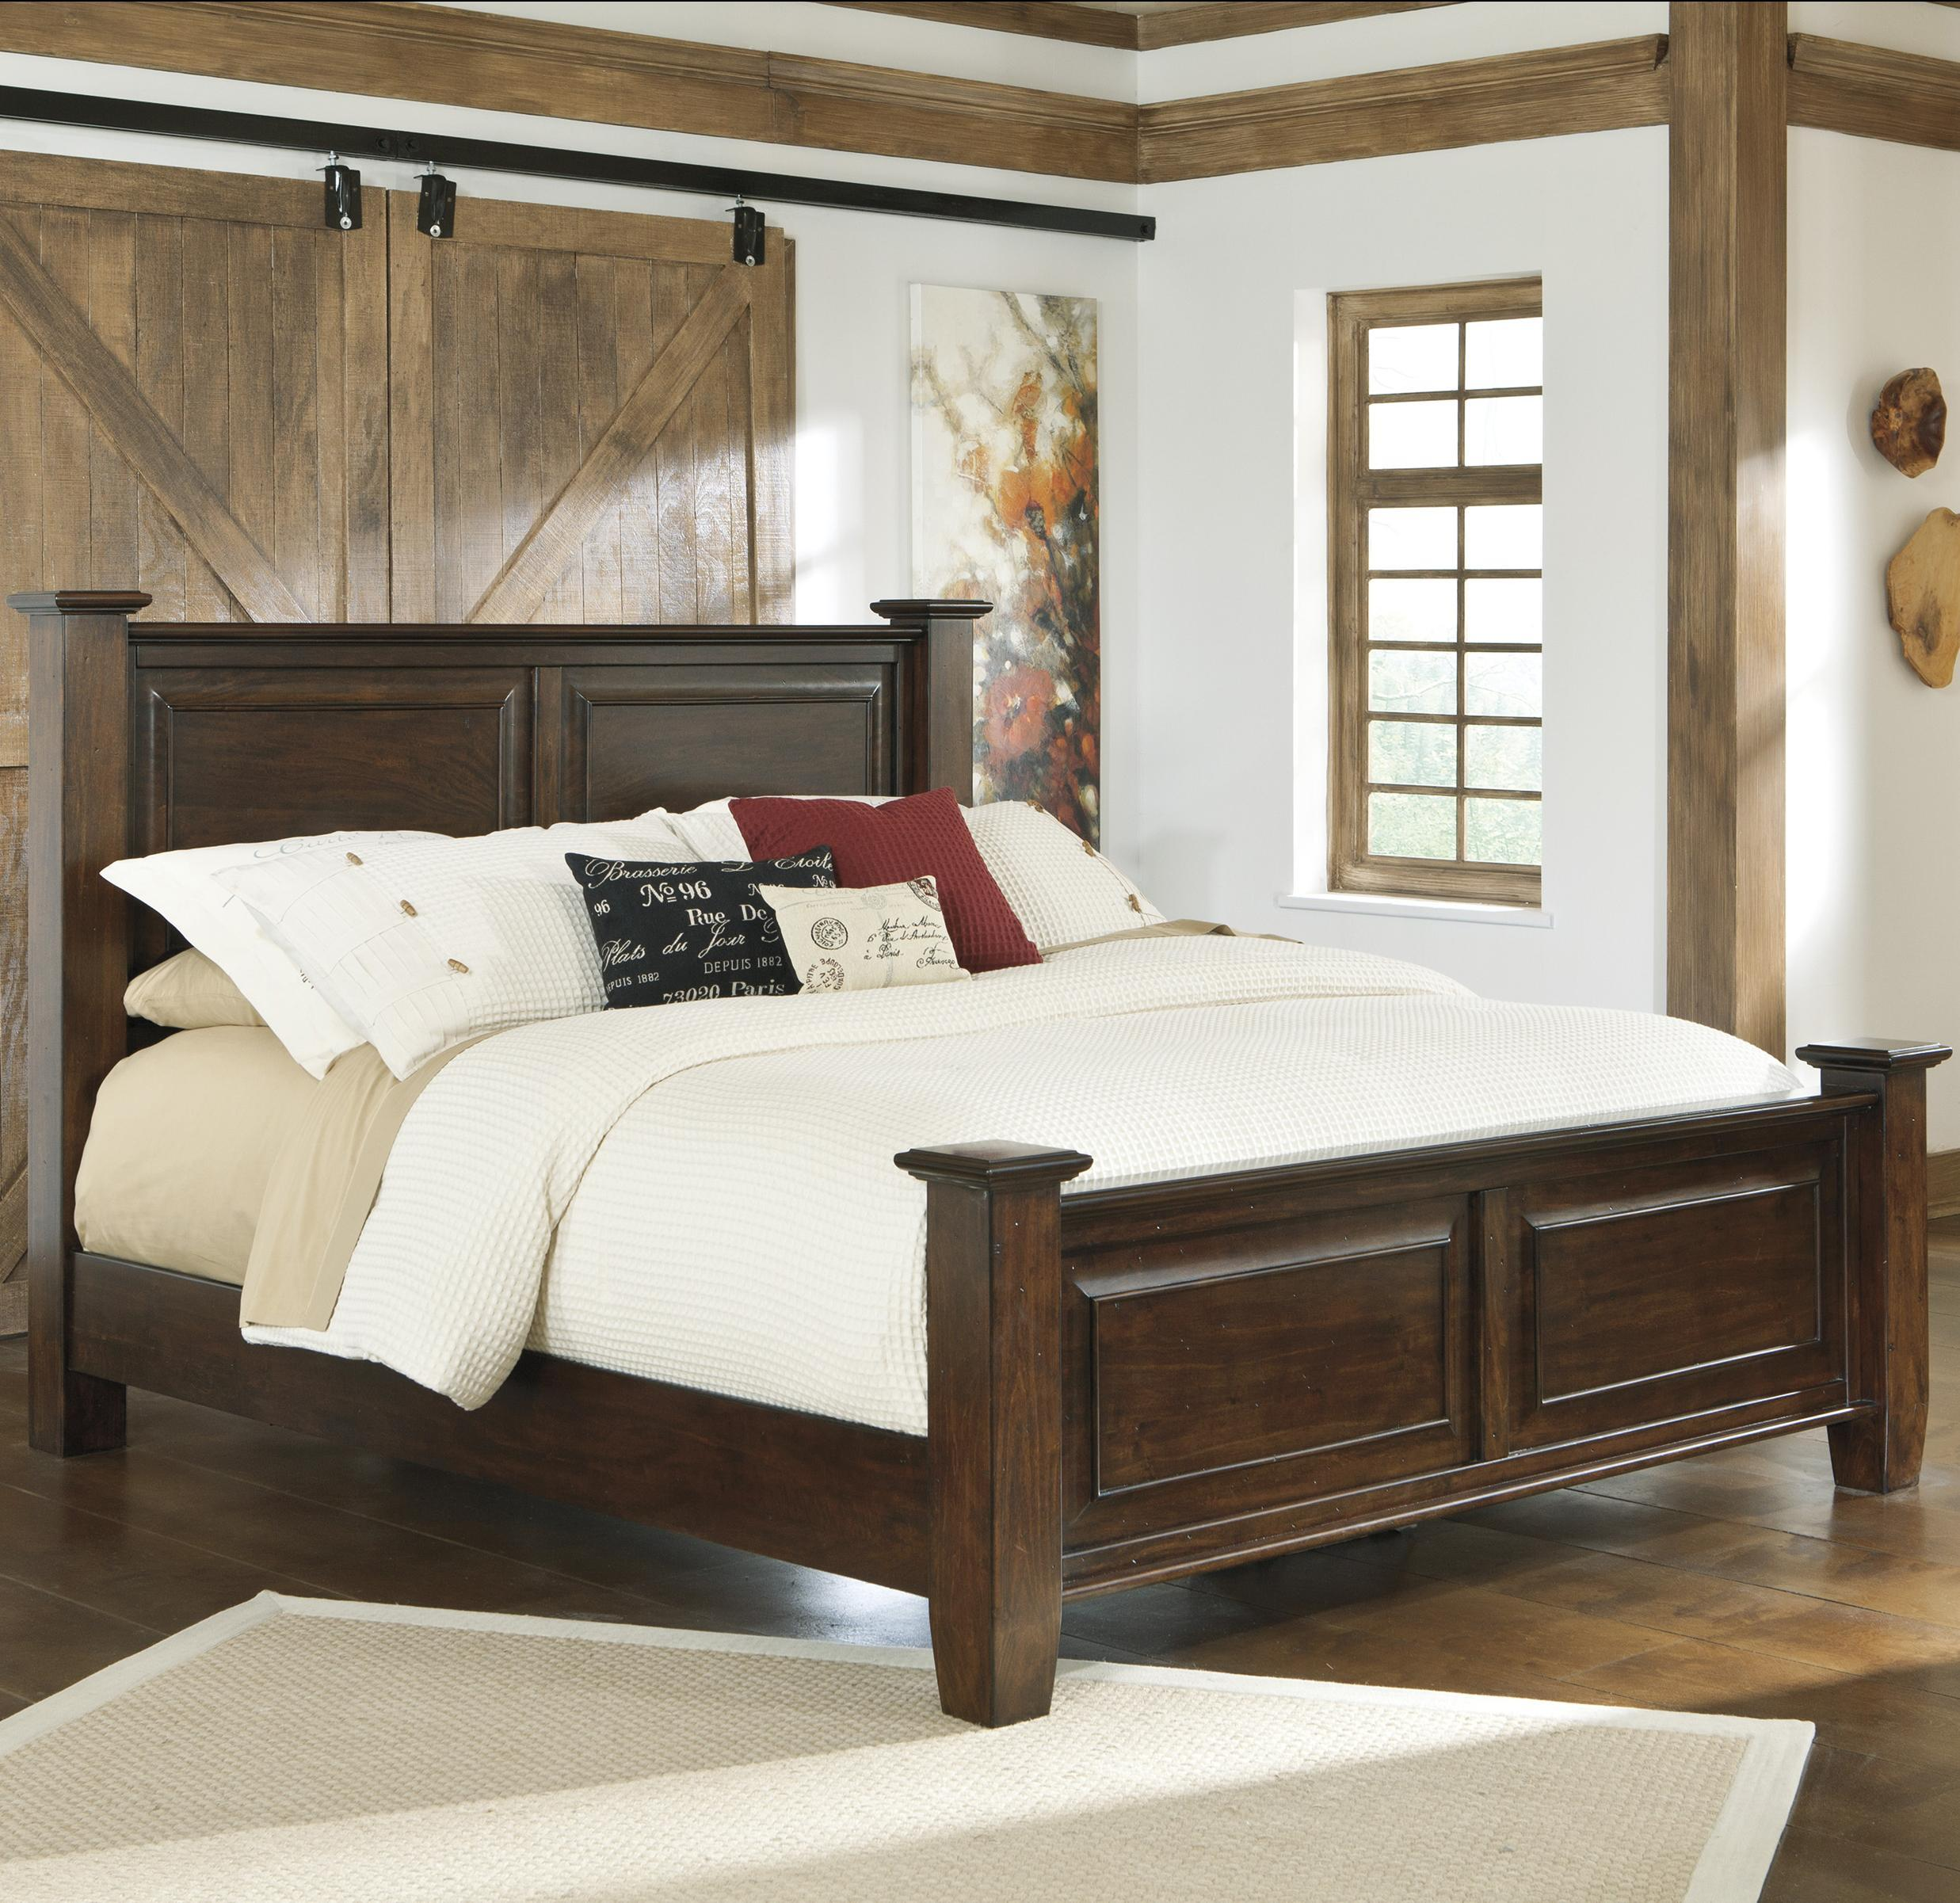 Millenium Bedroom Set 28 Images South Coast Sleigh Bedroom Set Millennium Furniture Cart